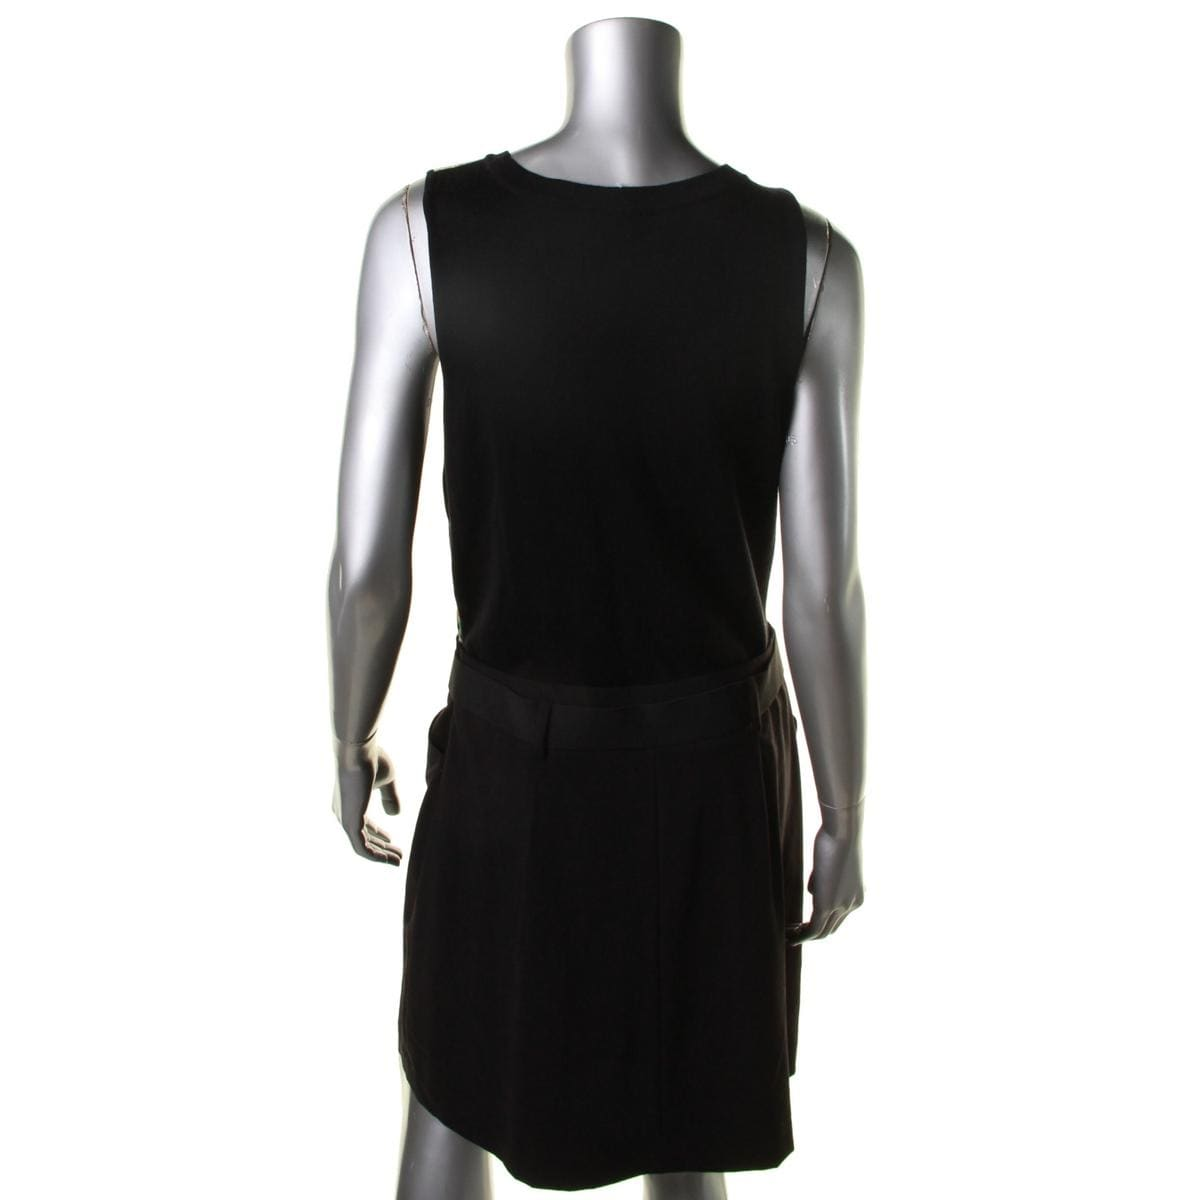 1a529b572a8e4 Shop Tahari ASL Womens Petites Sweaterdress Colorblock Mixed Media - 12P - Free  Shipping Today - Overstock - 18909087